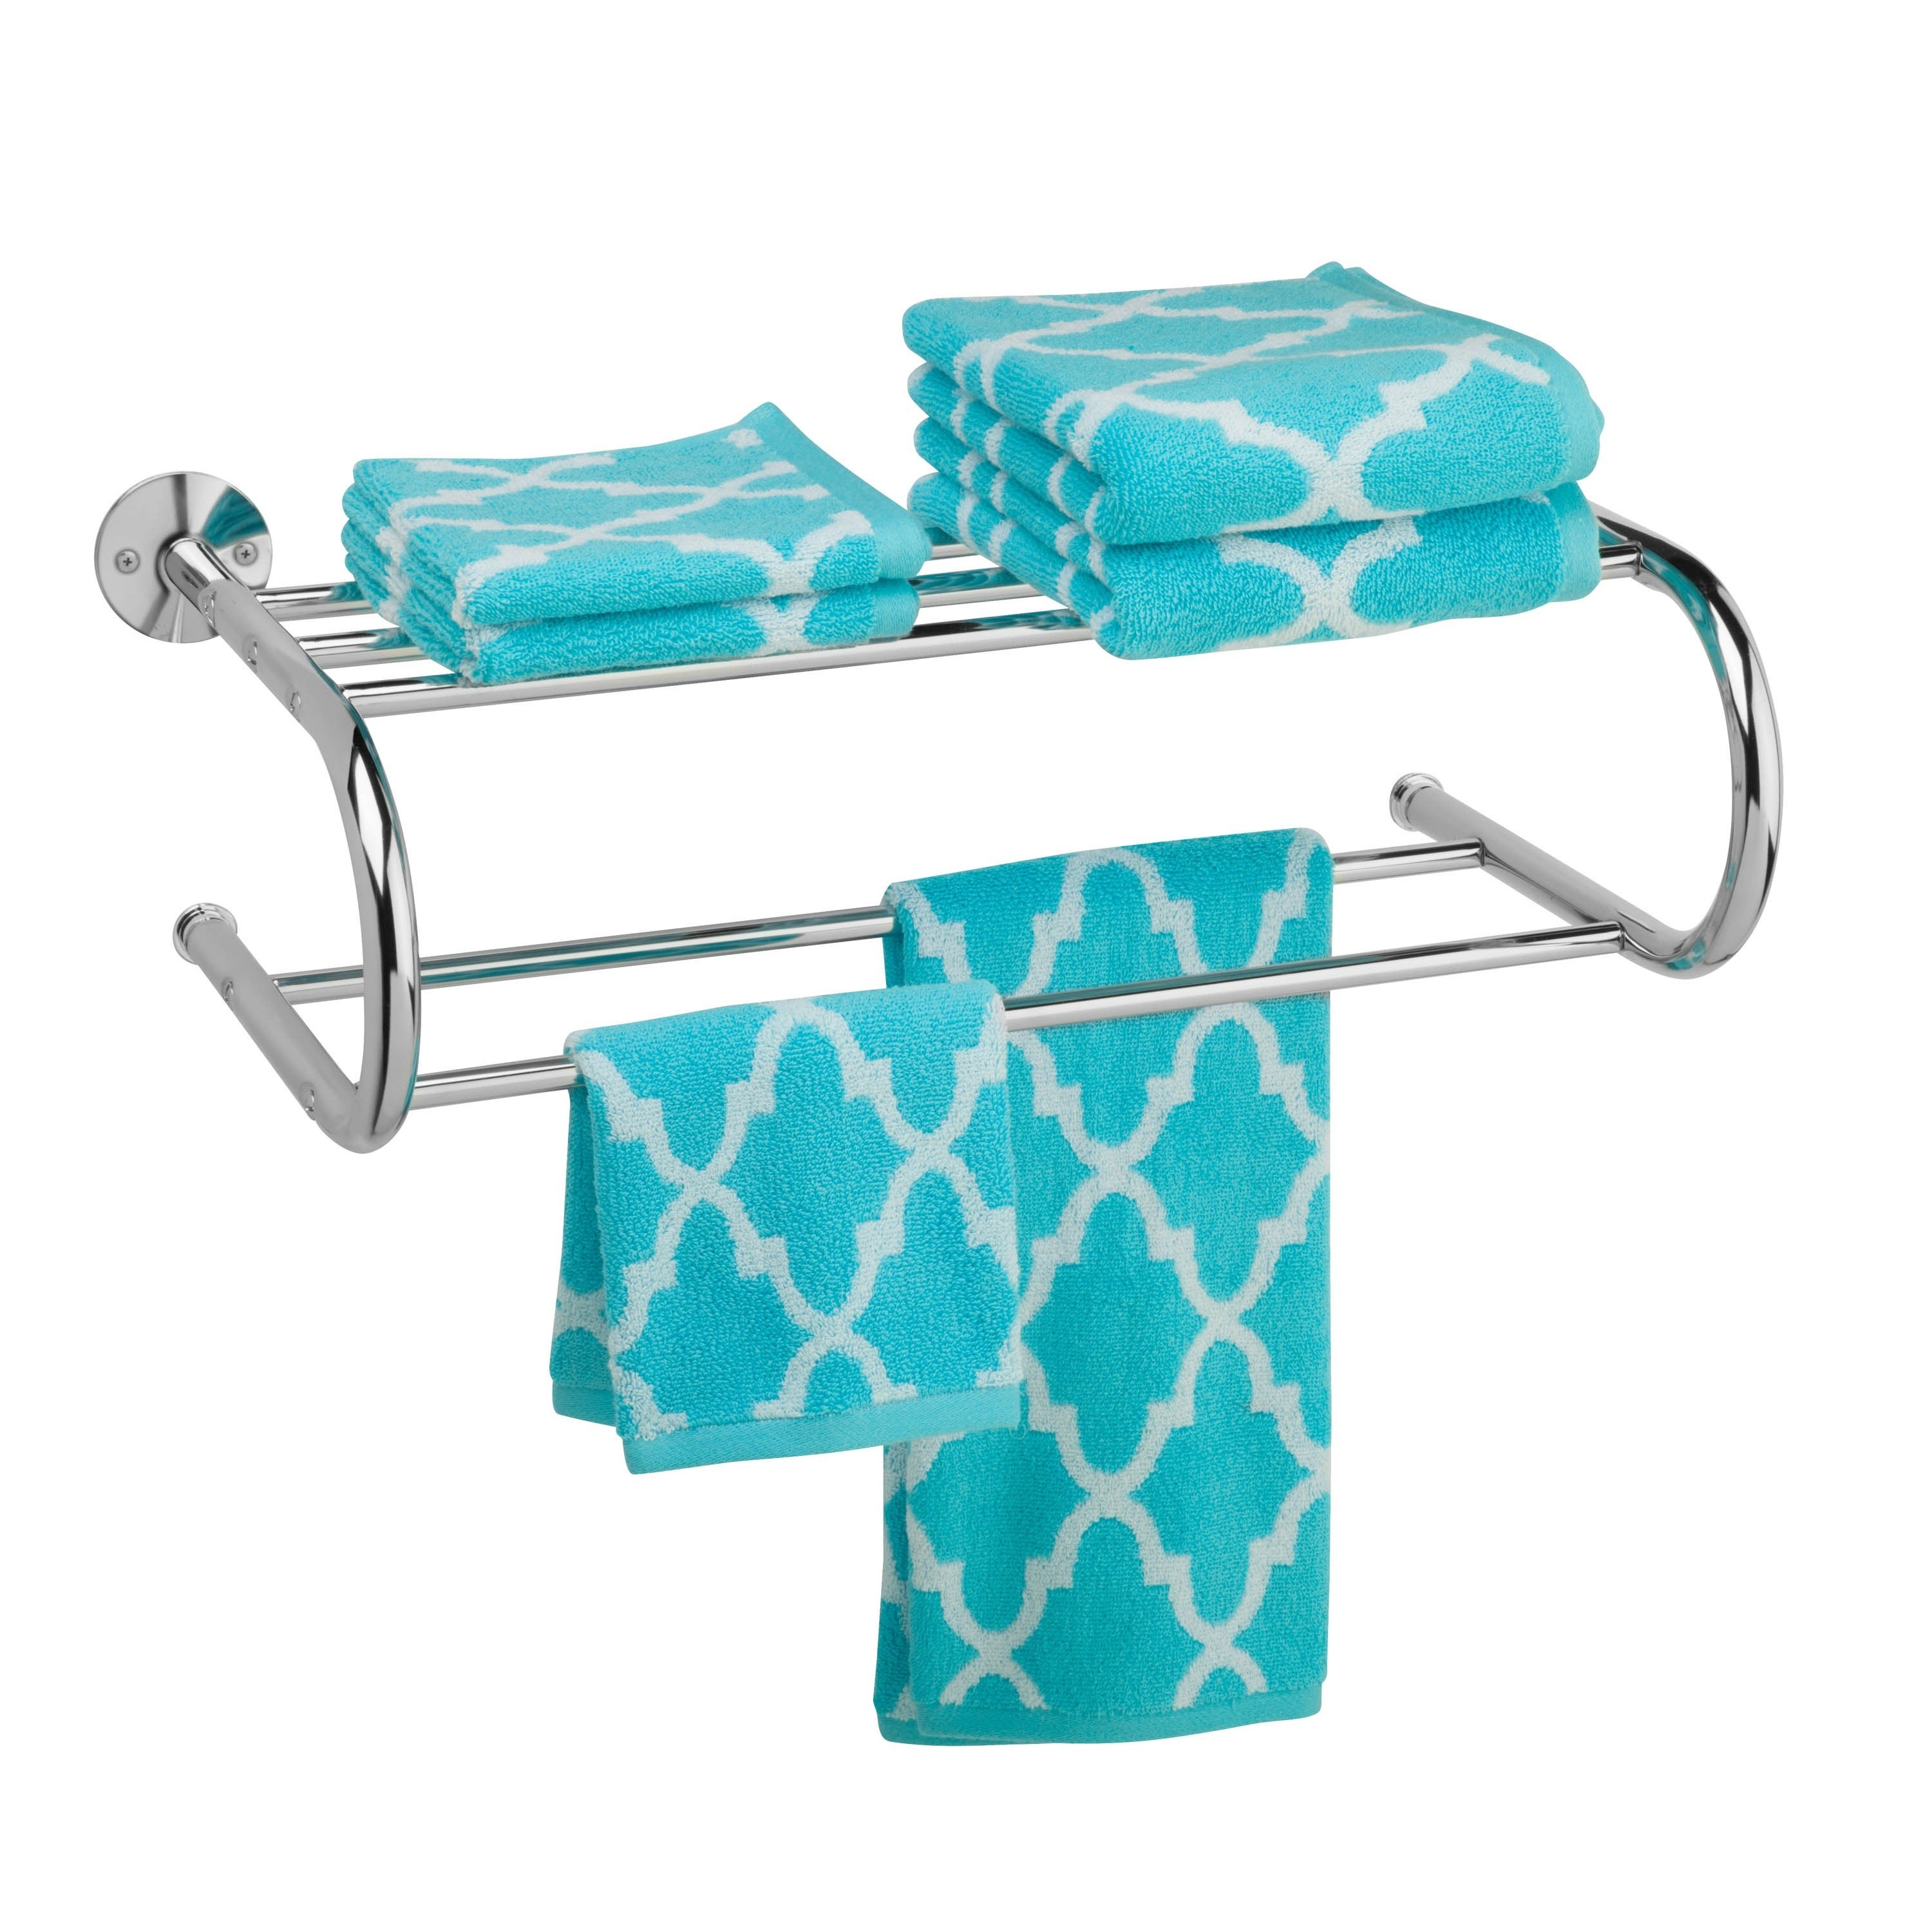 Shop Honey-Can-Do Chrome Wall Mount Towel Rack - Free Shipping On ...